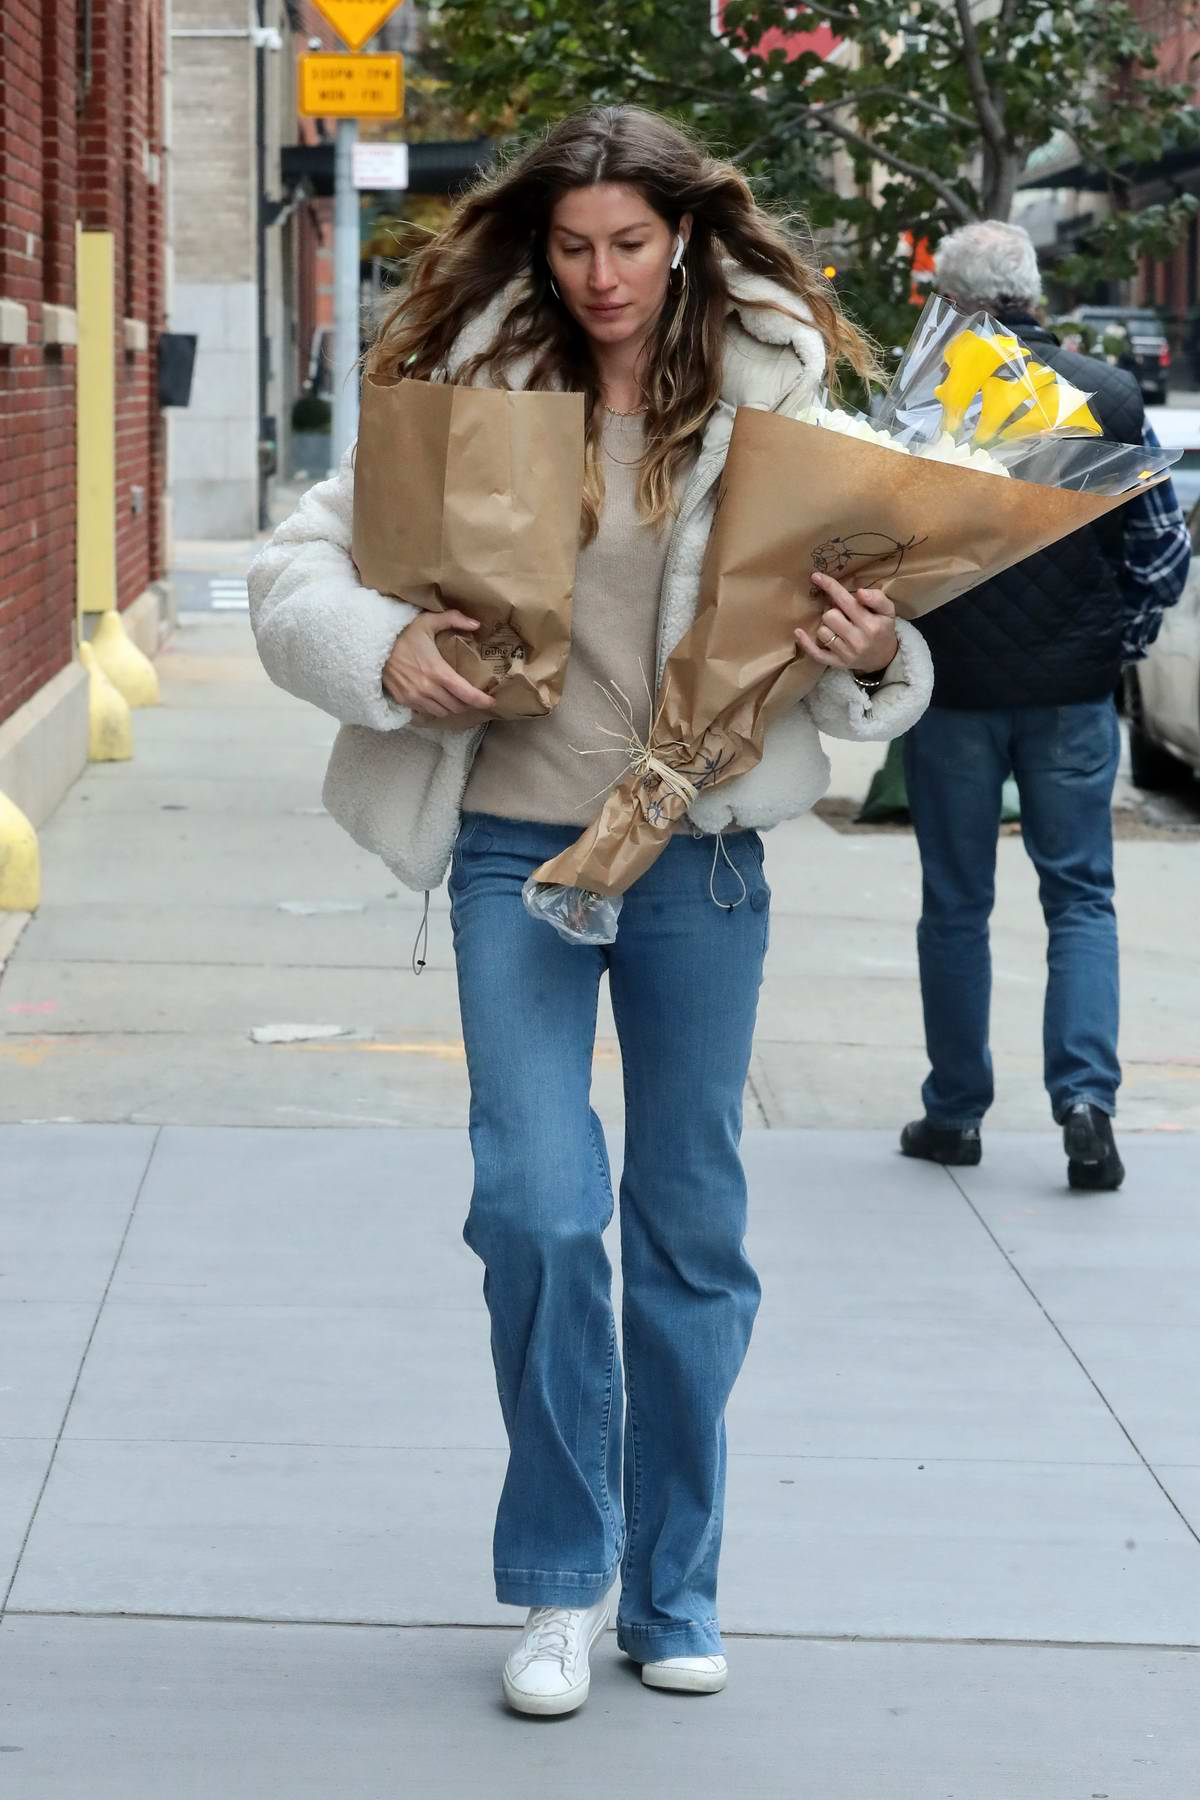 Gisele Bundchen picks up some flowers while out in New York City